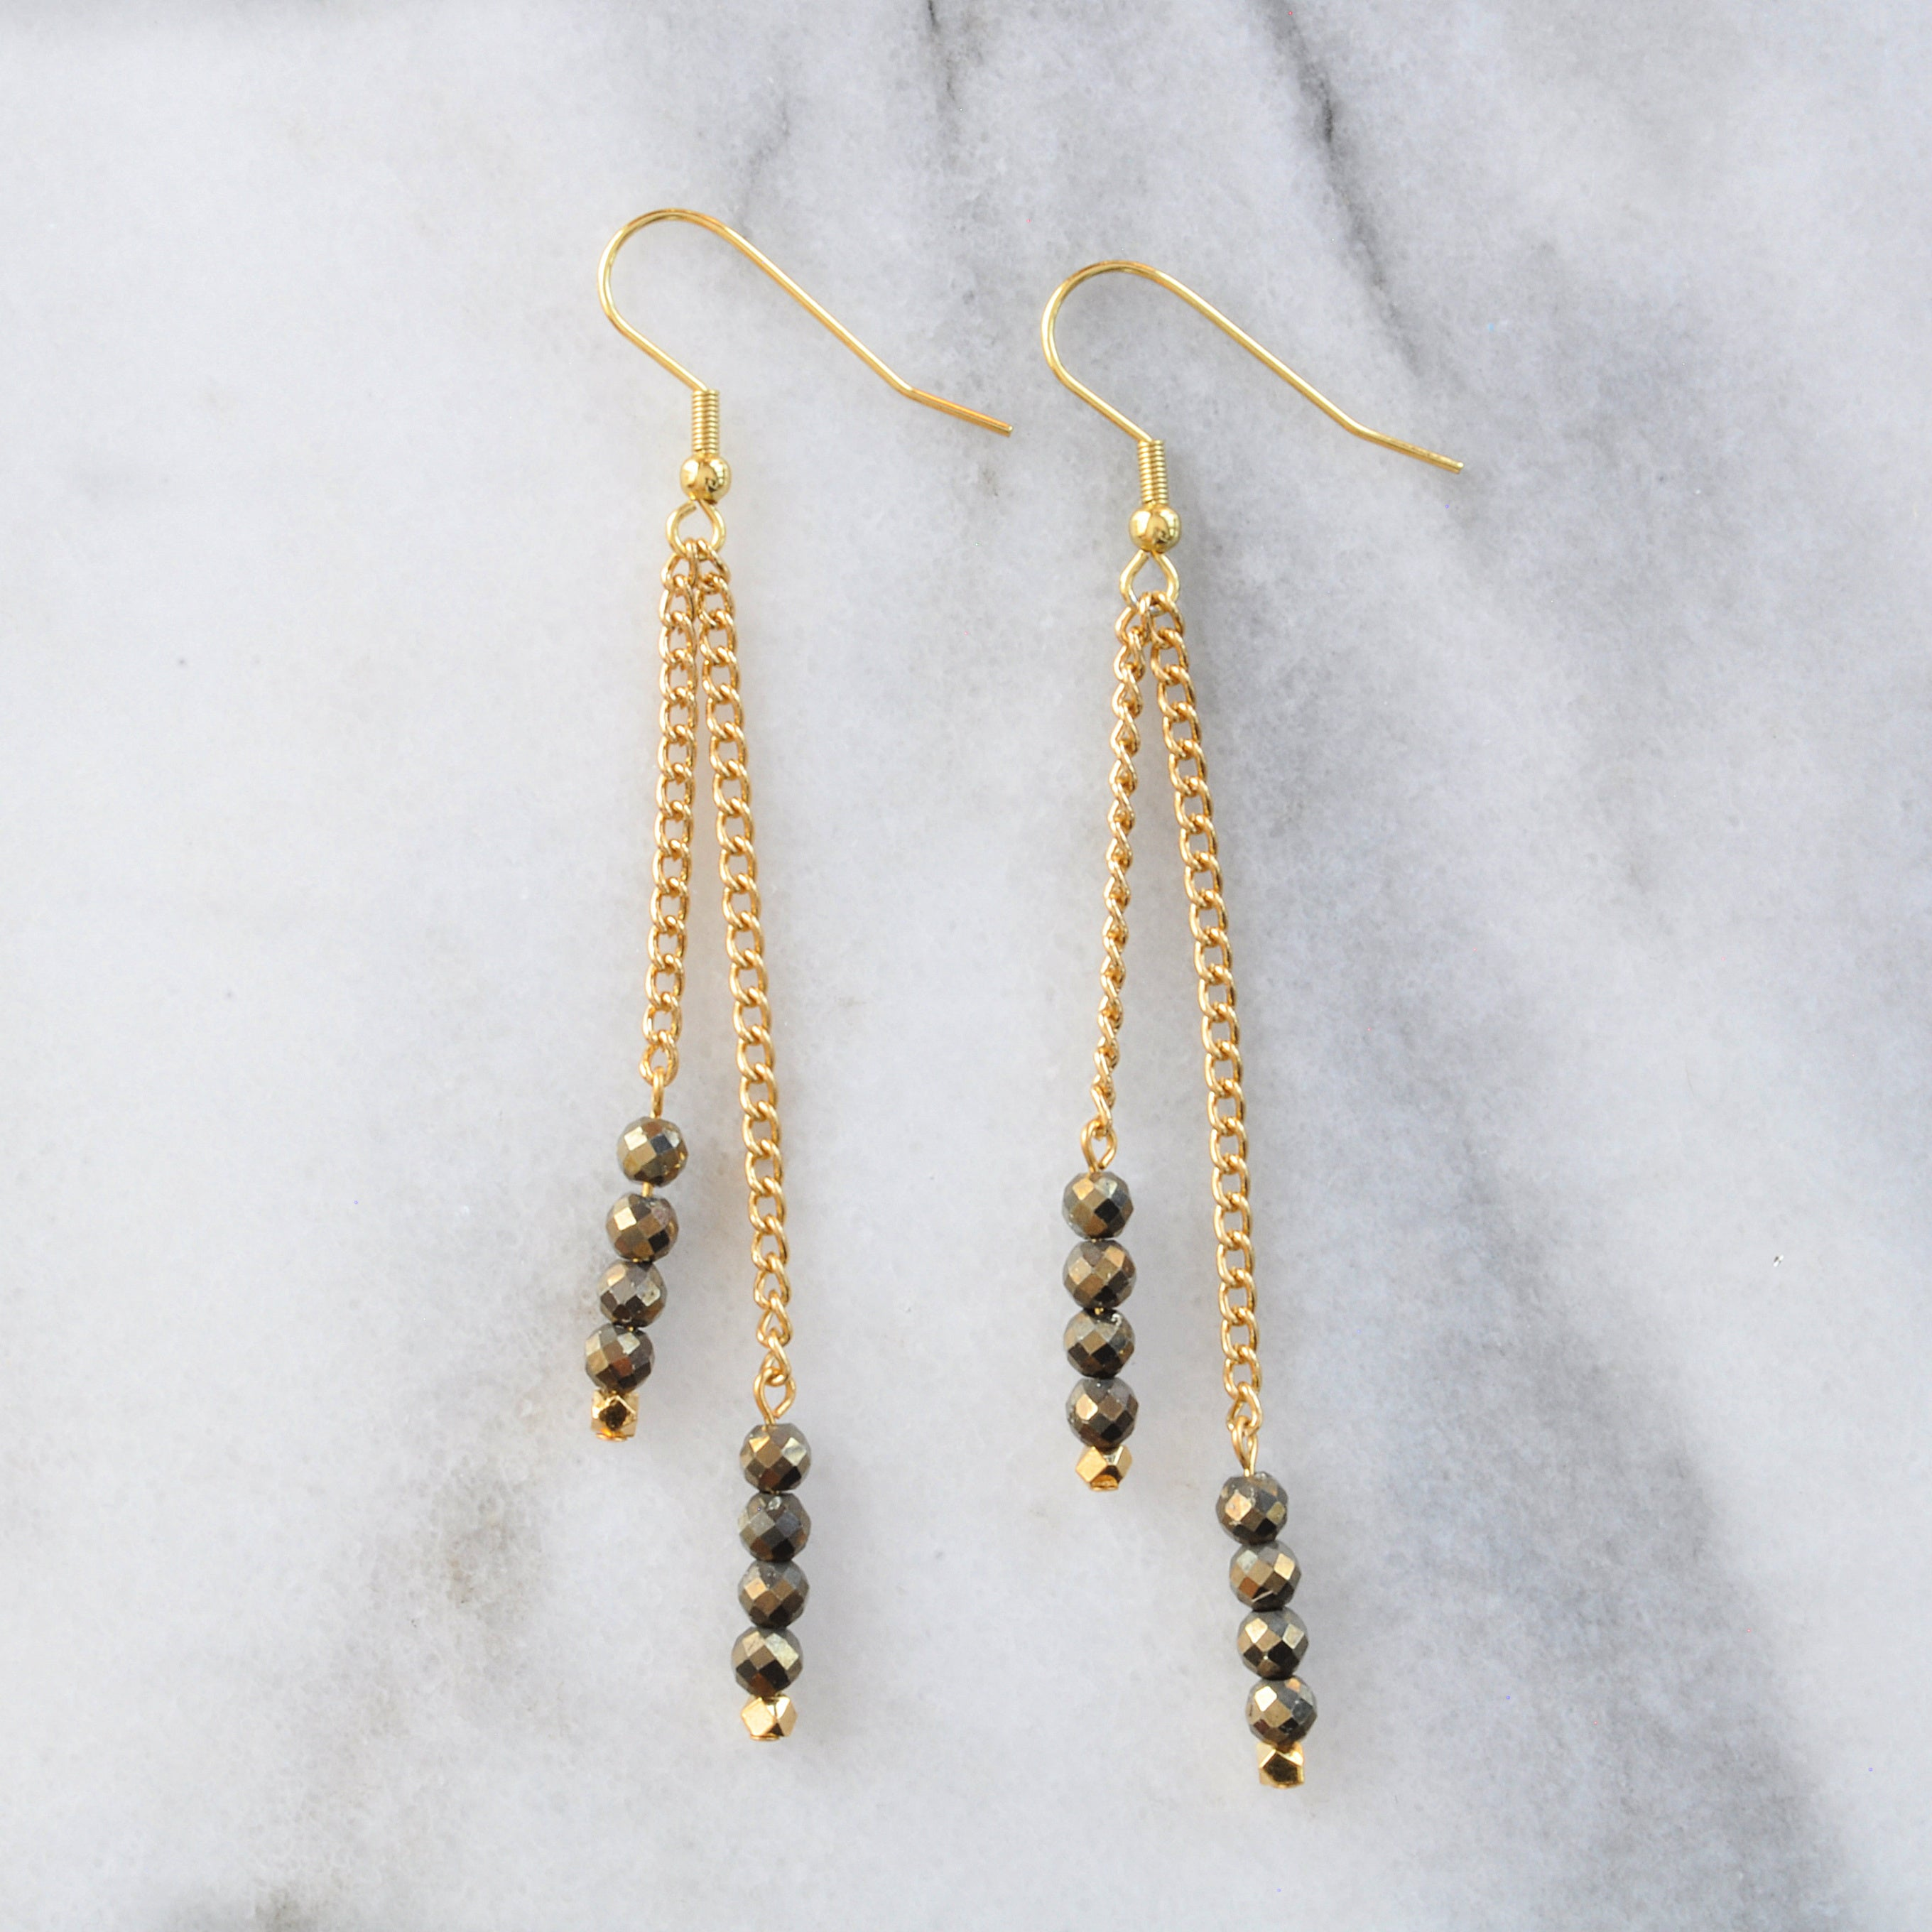 Libby & Smee Gemstone Gold chain Earrings available with Pyrite beads